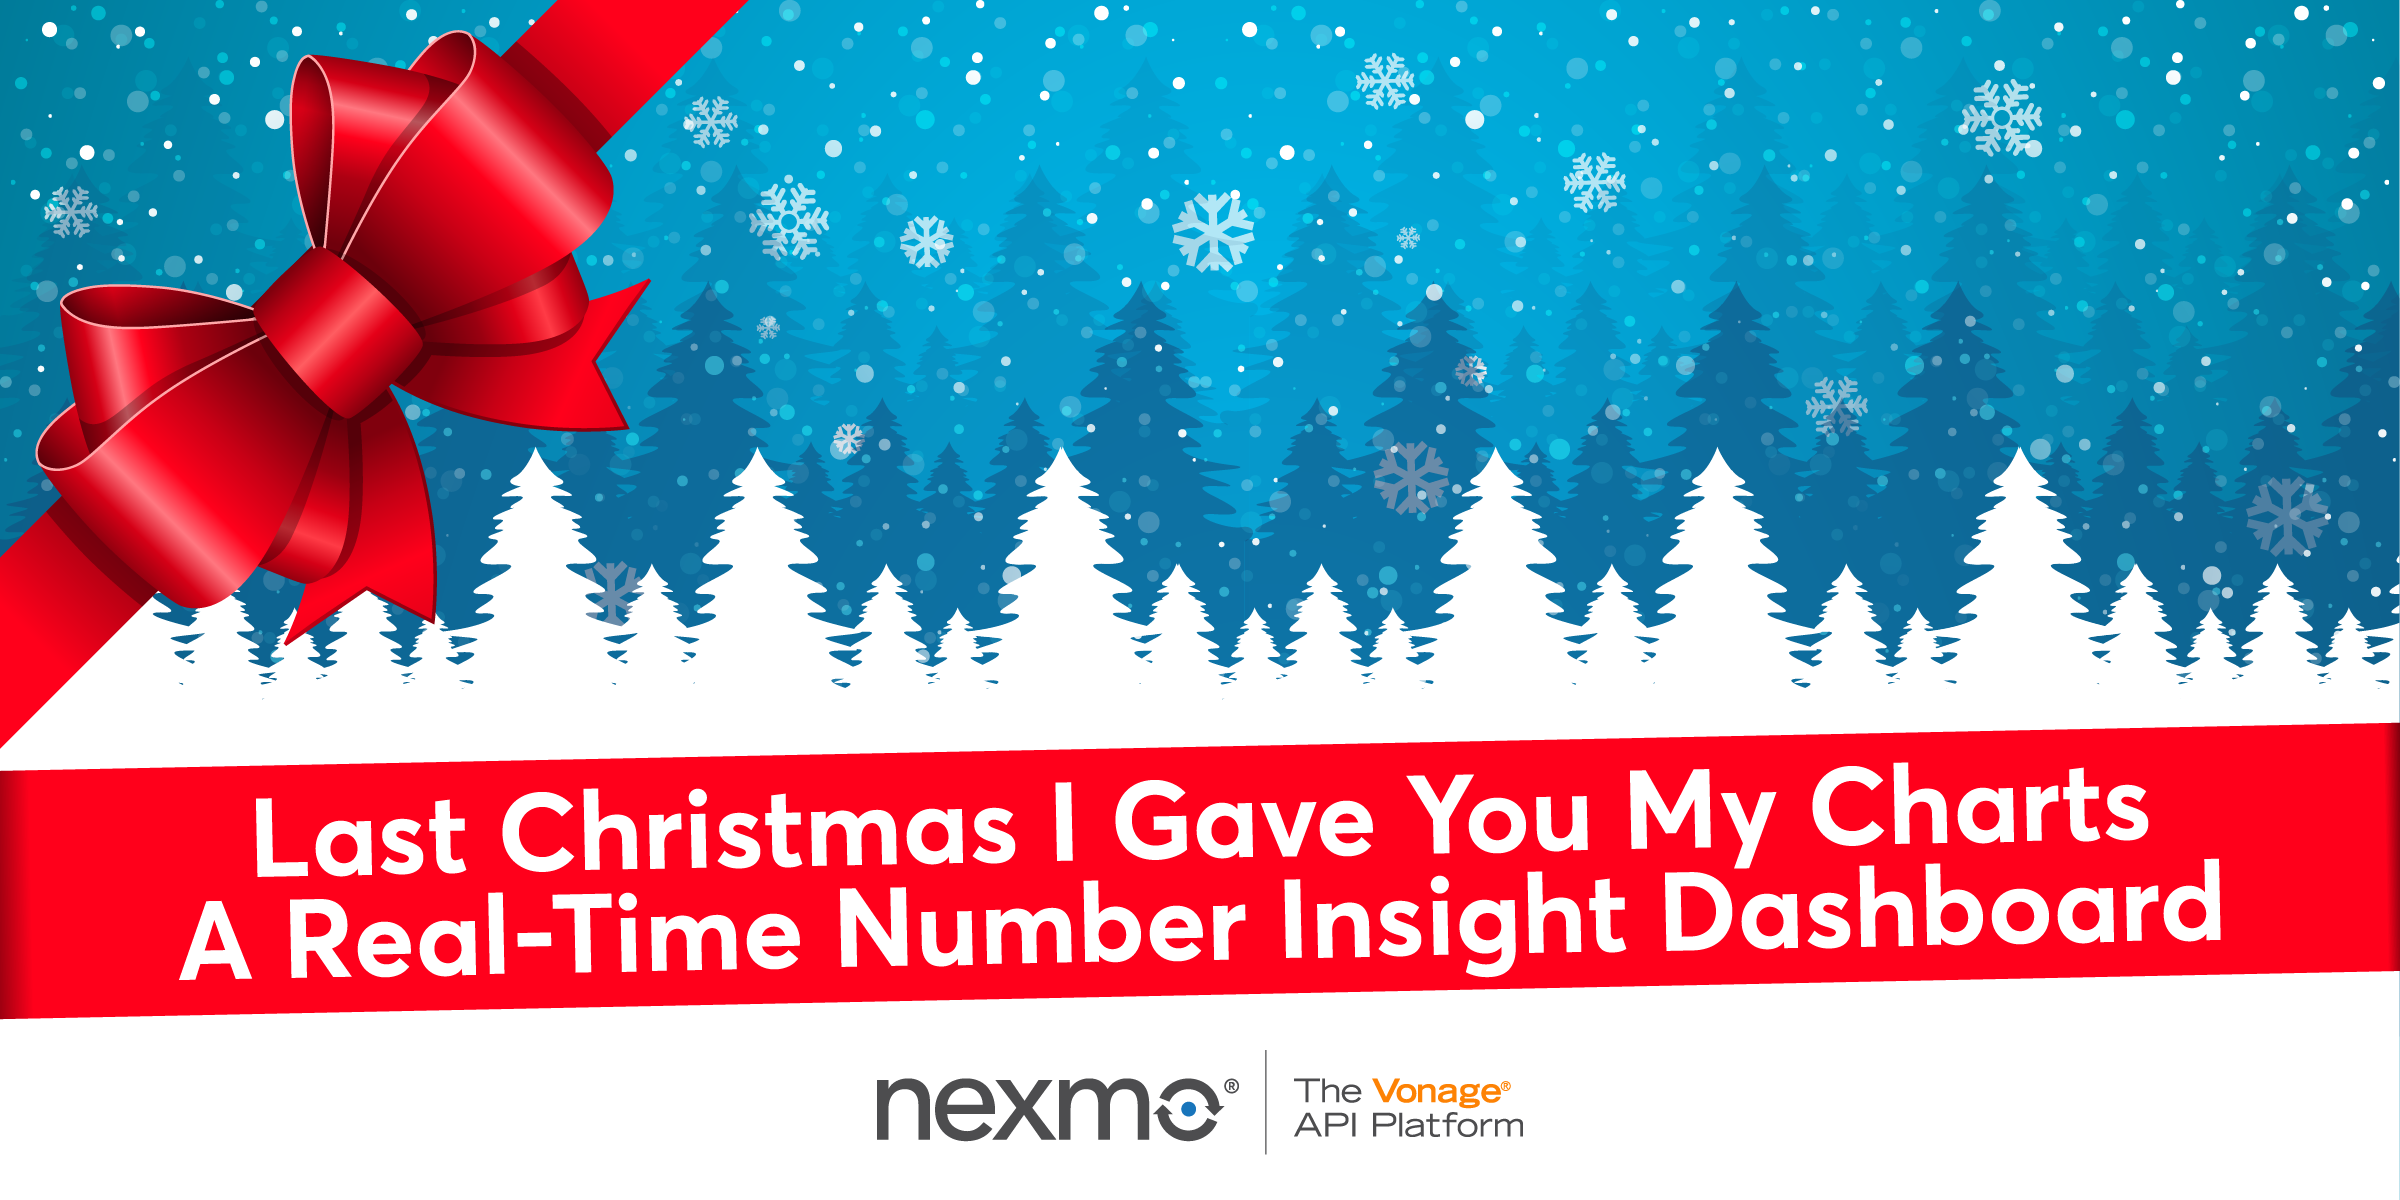 Last Christmas I Gave You My Charts: A Real-Time Number Insight Dashboard